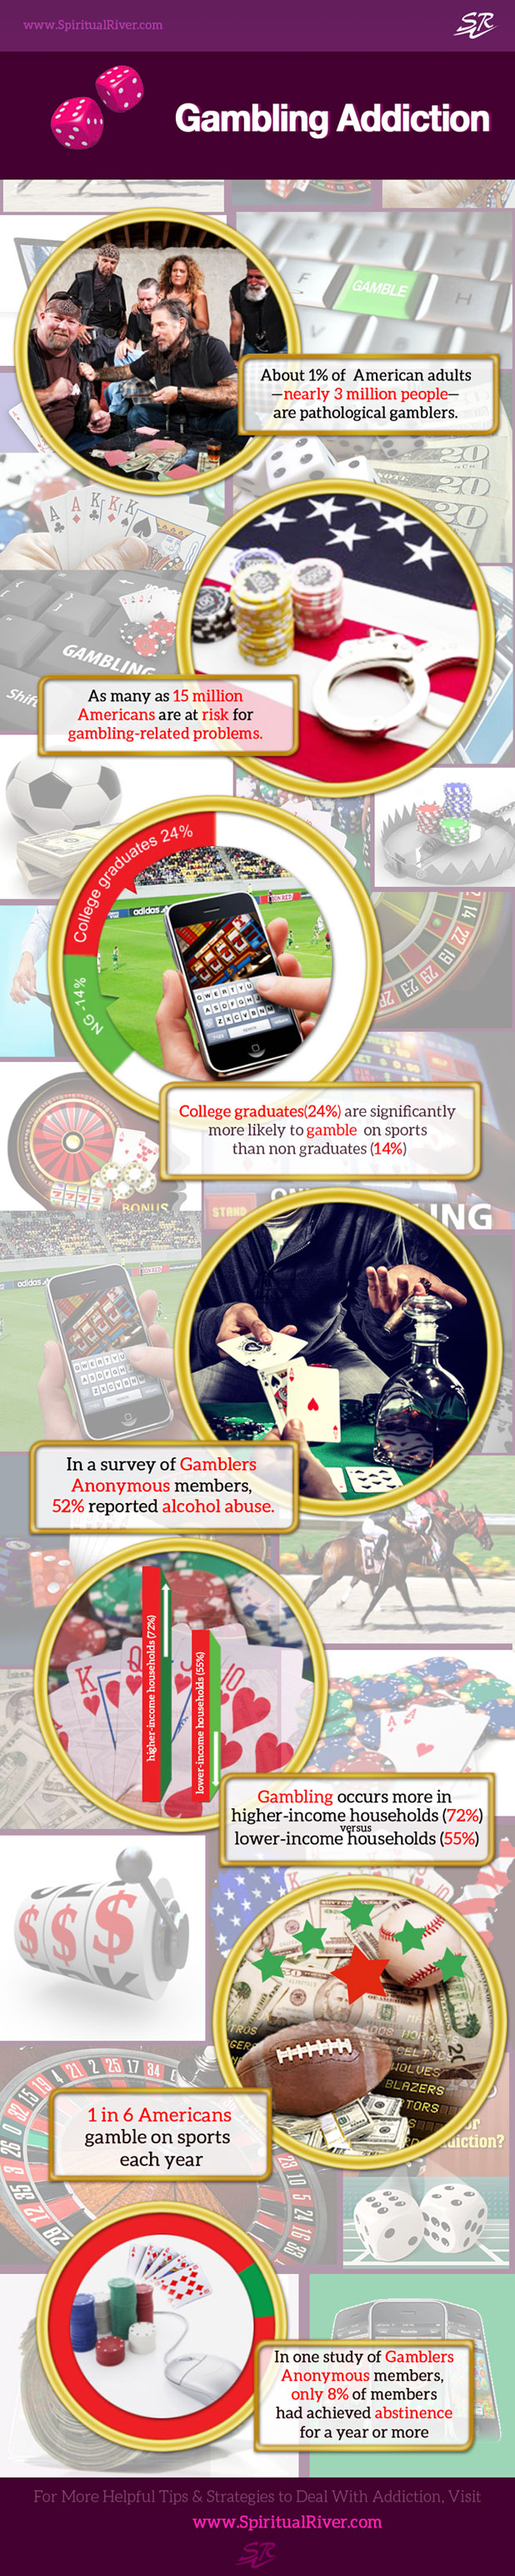 gambling-addiction-infographic